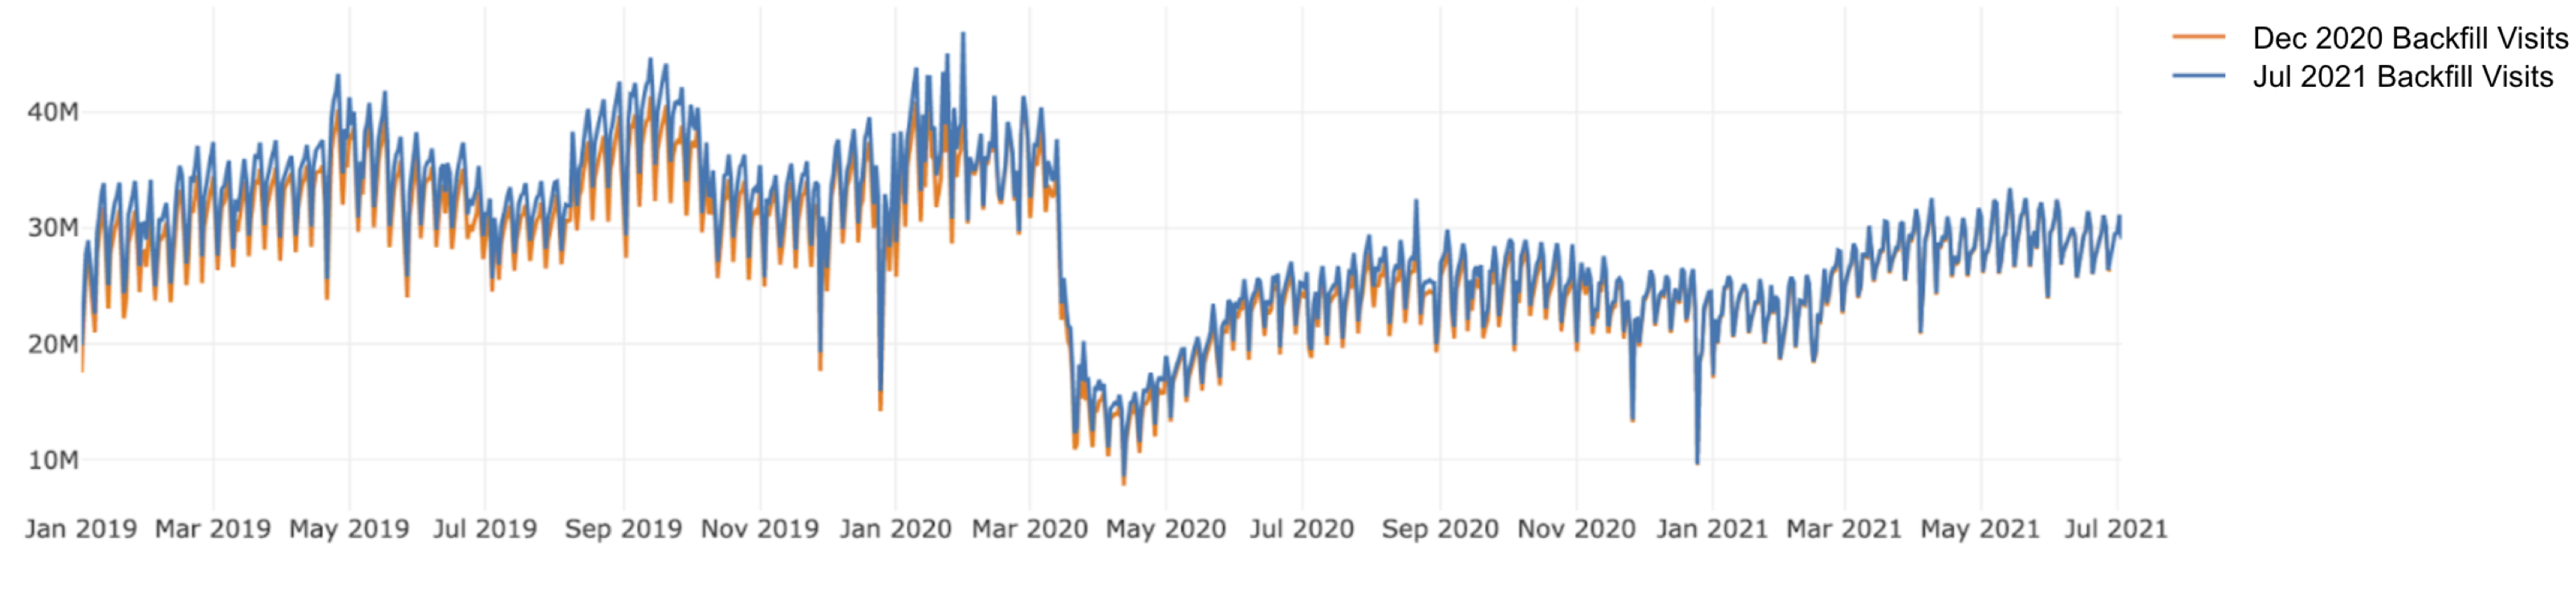 Daily total POI visits from the July 2021 and Dec 2020 backfills show similar trends overall.